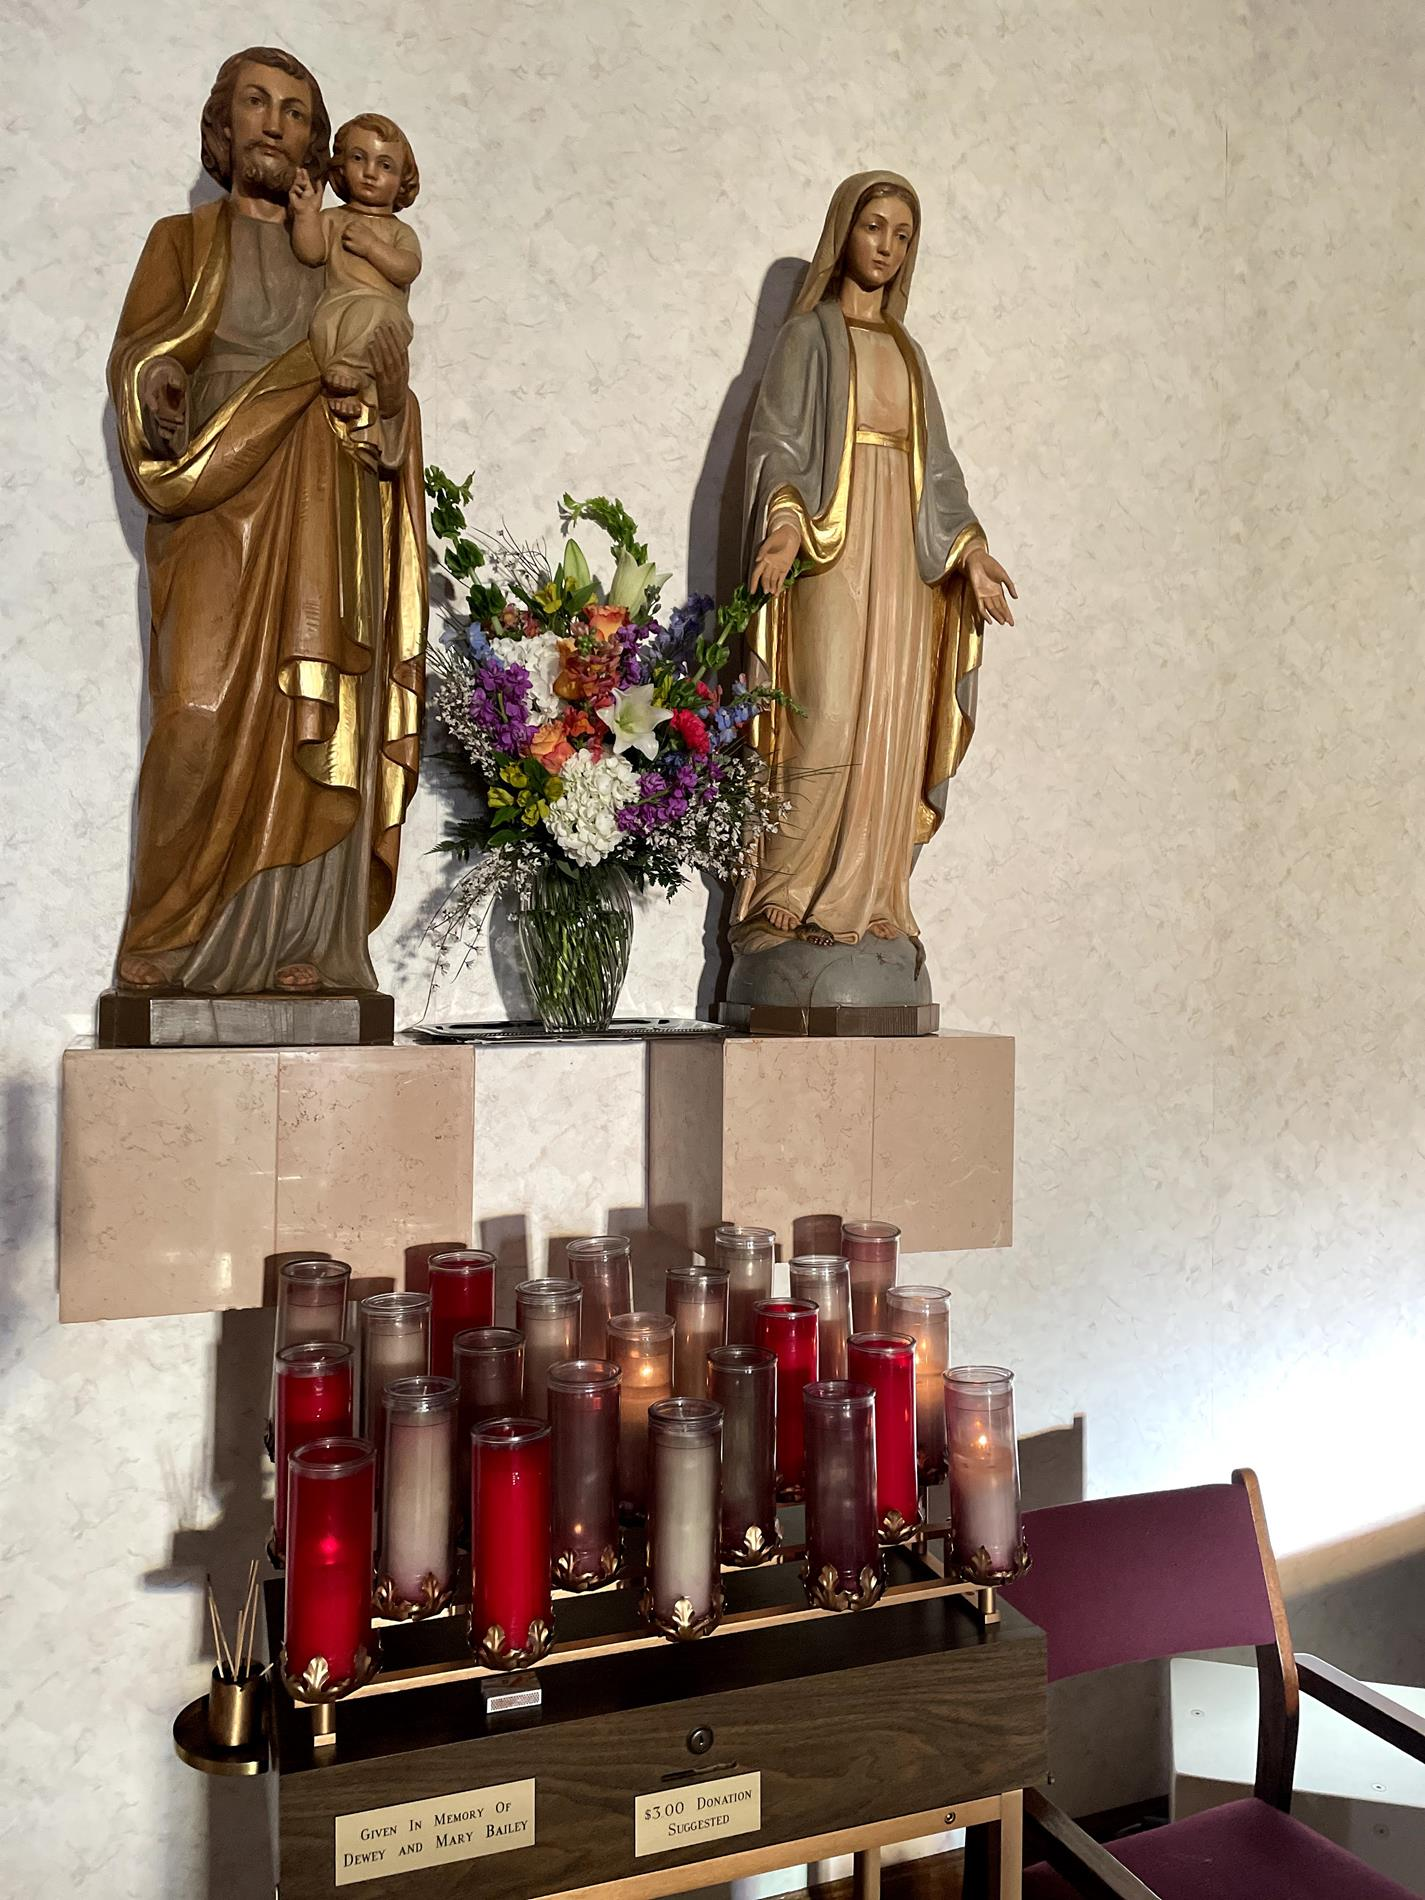 Honoring the Holy Family